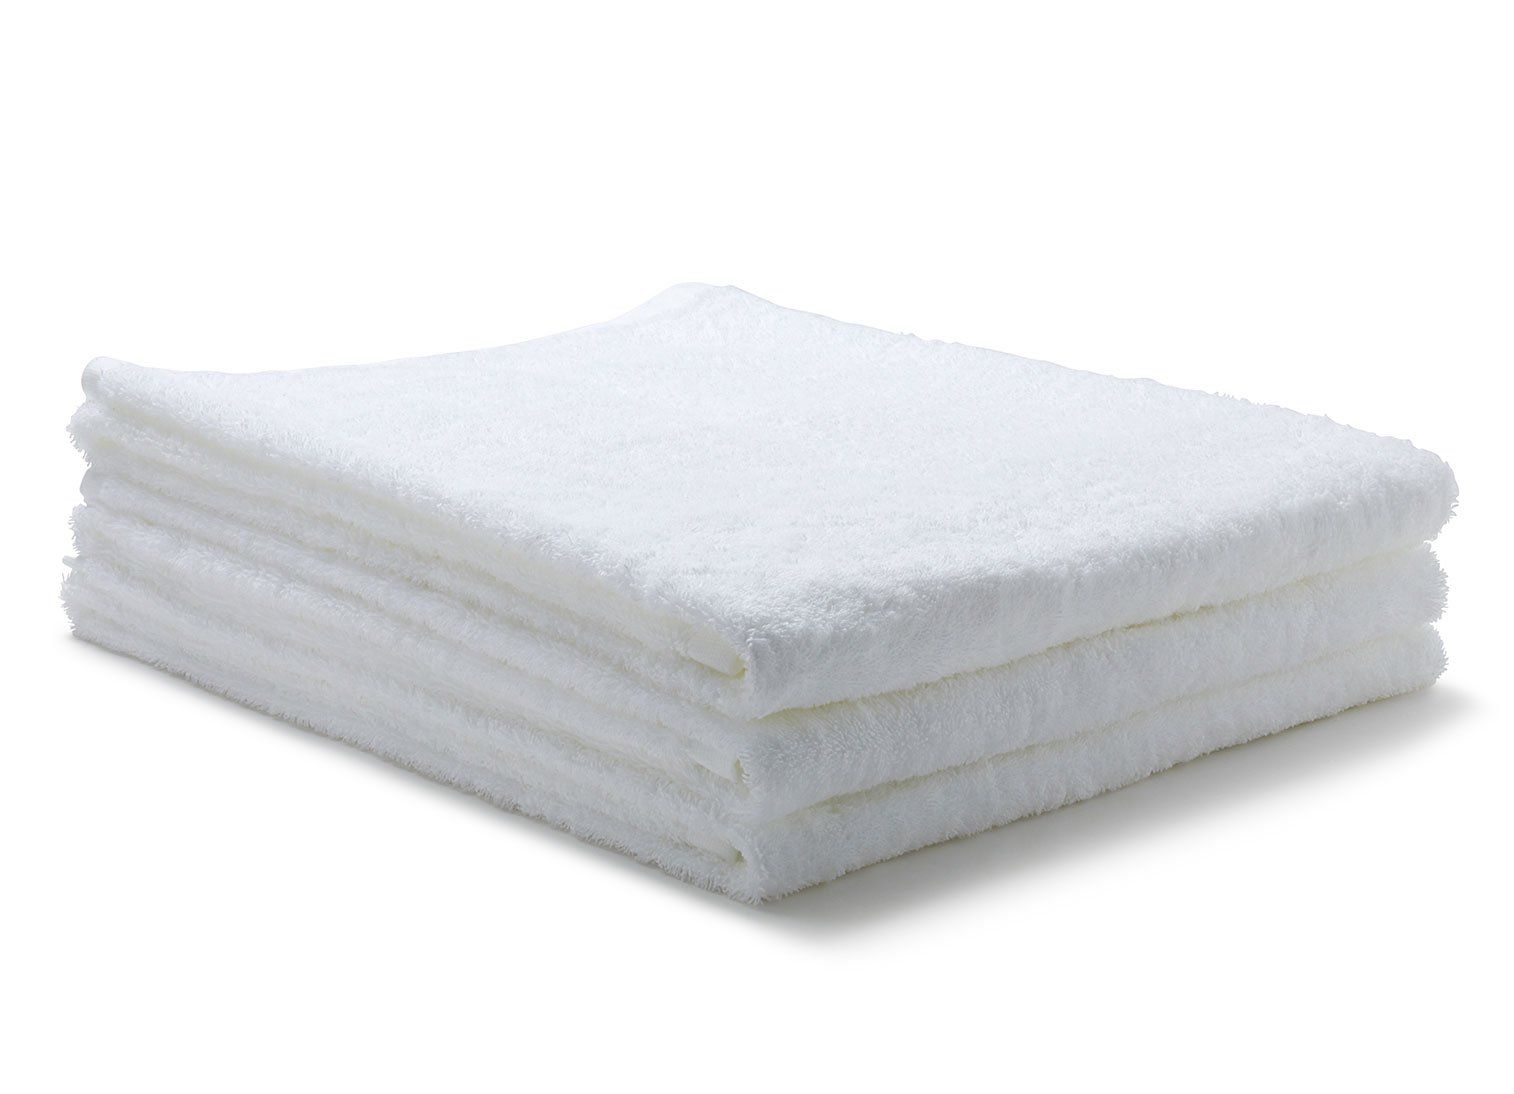 Bulk White Bath Towels Product Details 100 High Quality